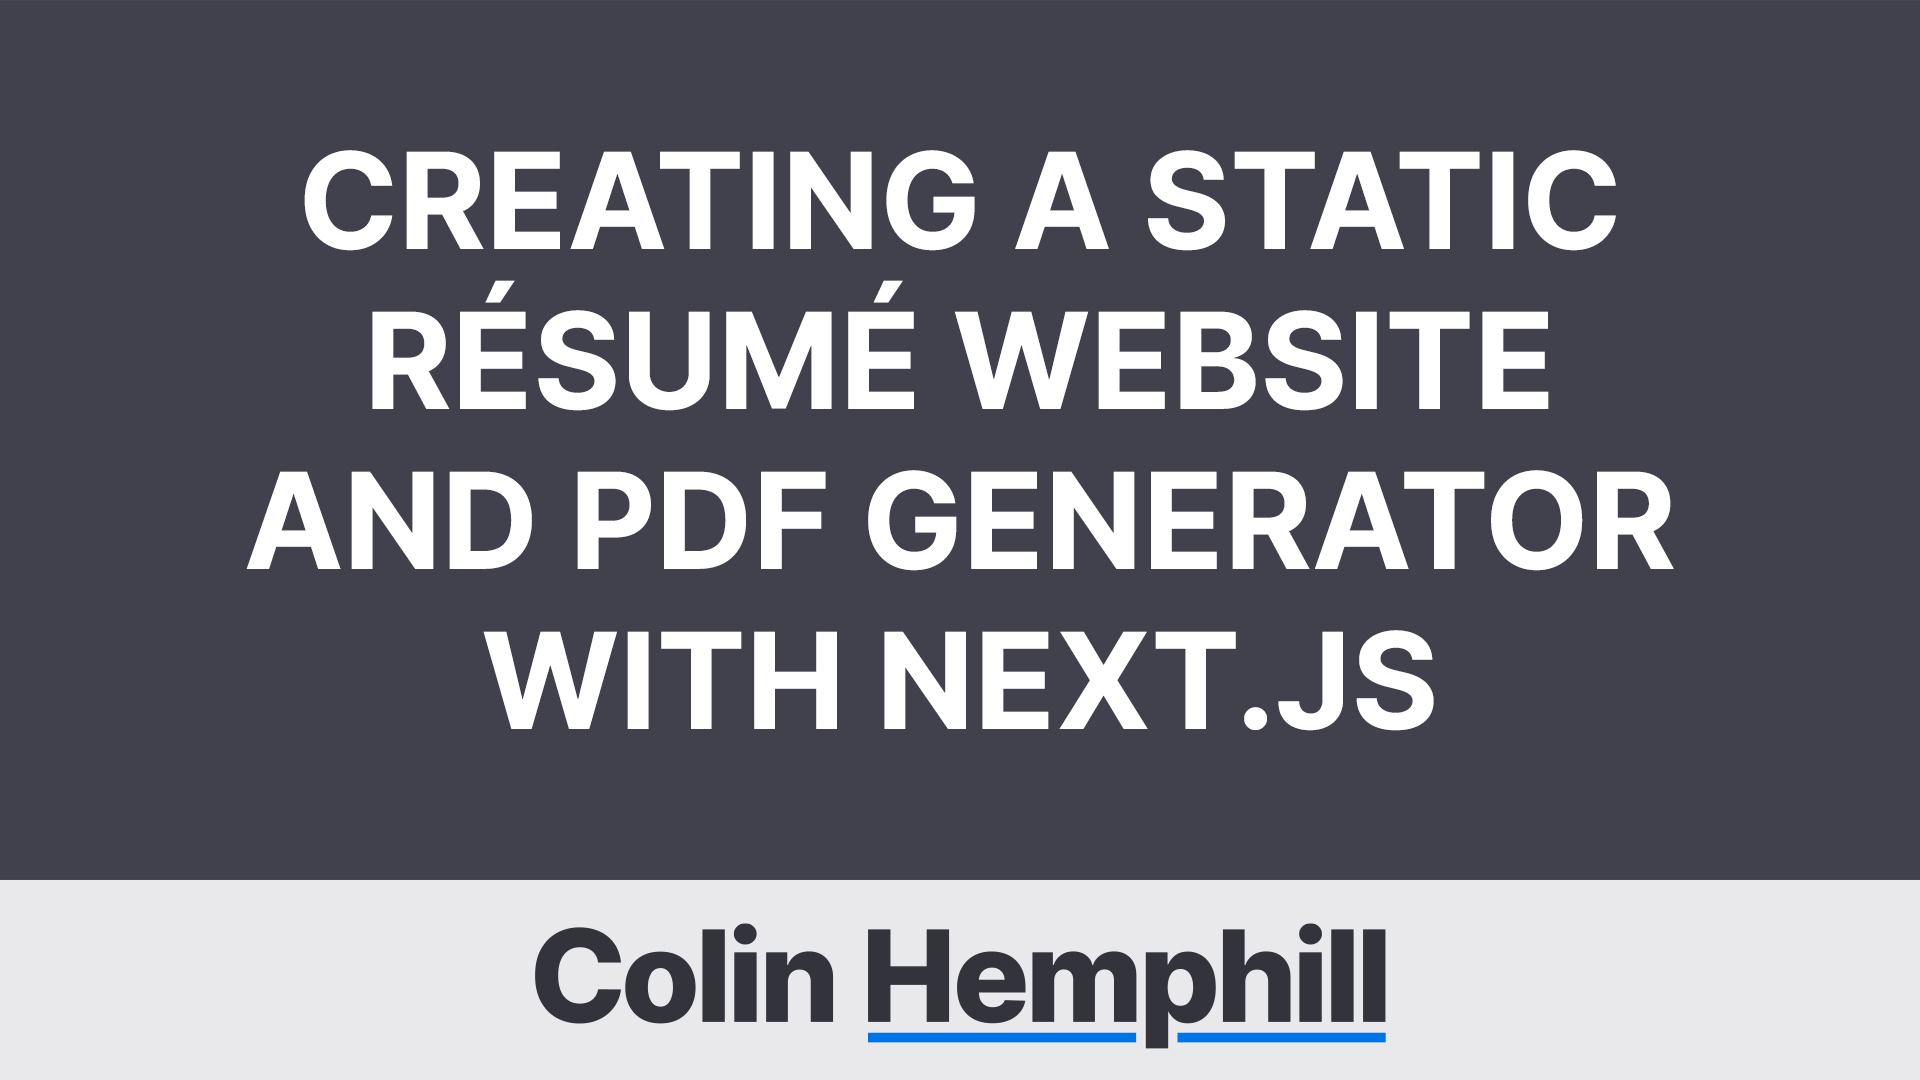 Creating a Static Résumé Website and PDF Generator With Next.js, by Colin Hemphill